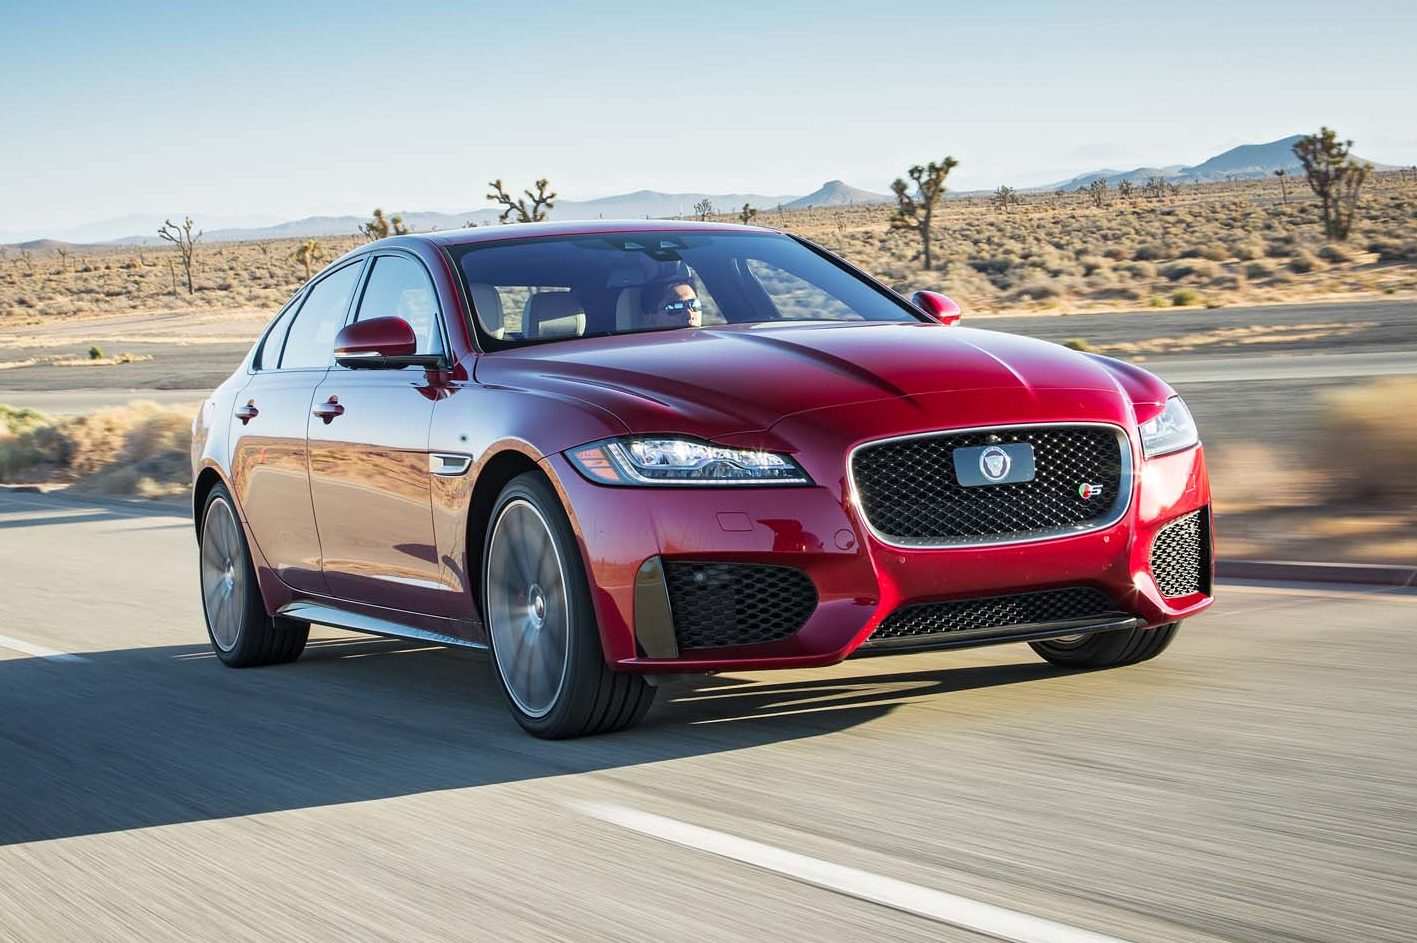 2017 Jaguar XF S AWD Front Three Quarter In Motion E1477930448860